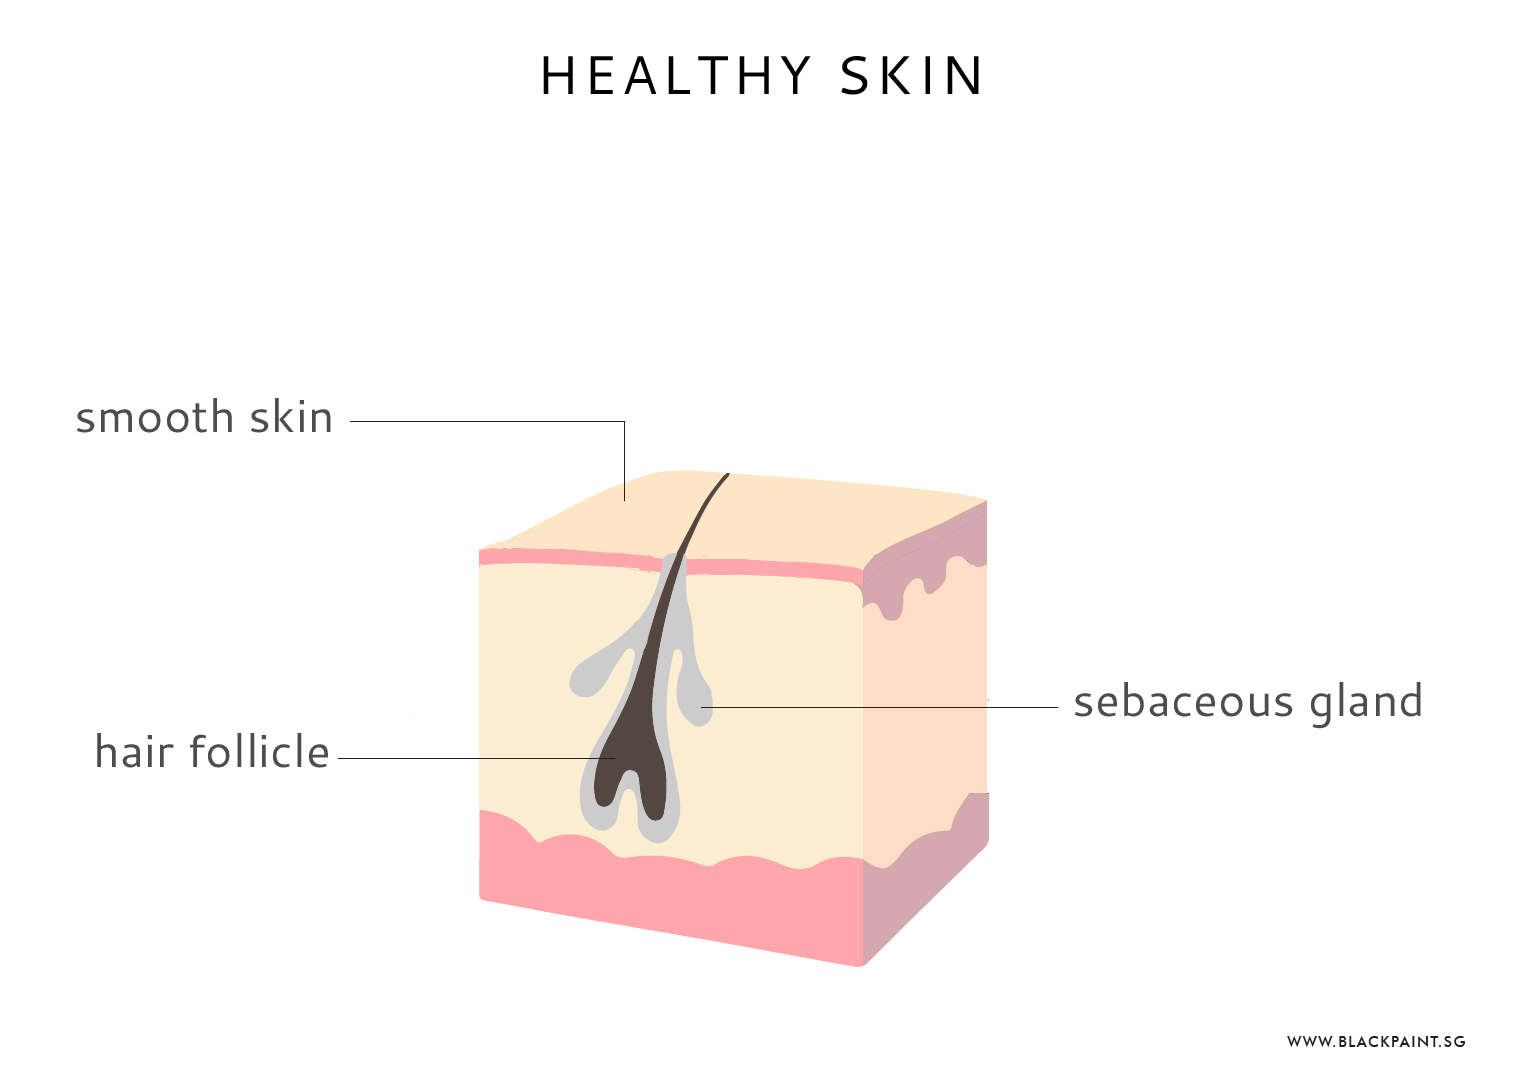 Healthy skin cross section